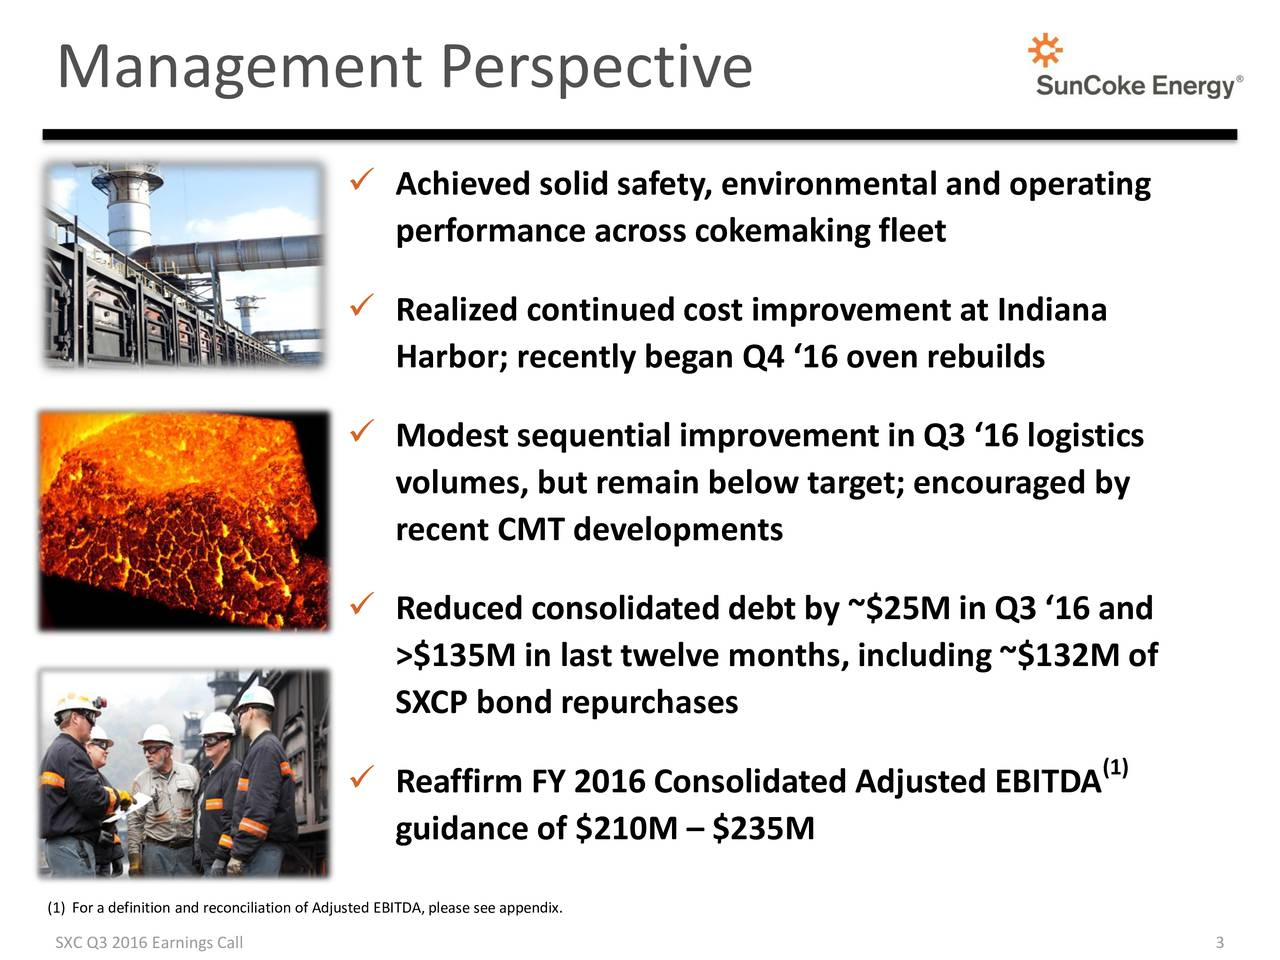 Achieved solid safety, environmental and operating performance across cokemaking fleet Realized continued cost improvement at Indiana Harbor; recently began Q4 16 oven rebuilds Modest sequential improvement in Q3 16 logistics volumes, but remain below target; encouraged by recent CMT developments Reduced consolidated debt by ~$25M in Q3 16 and >$135M in last twelve months, including ~$132M of SXCP bond repurchases Reaffirm FY 2016 Consolidated Adjusted EBITDA (1) guidance of $210M  $235M (1) For a definition and reconciliation of Adjusted EBITDA, please see appendix.